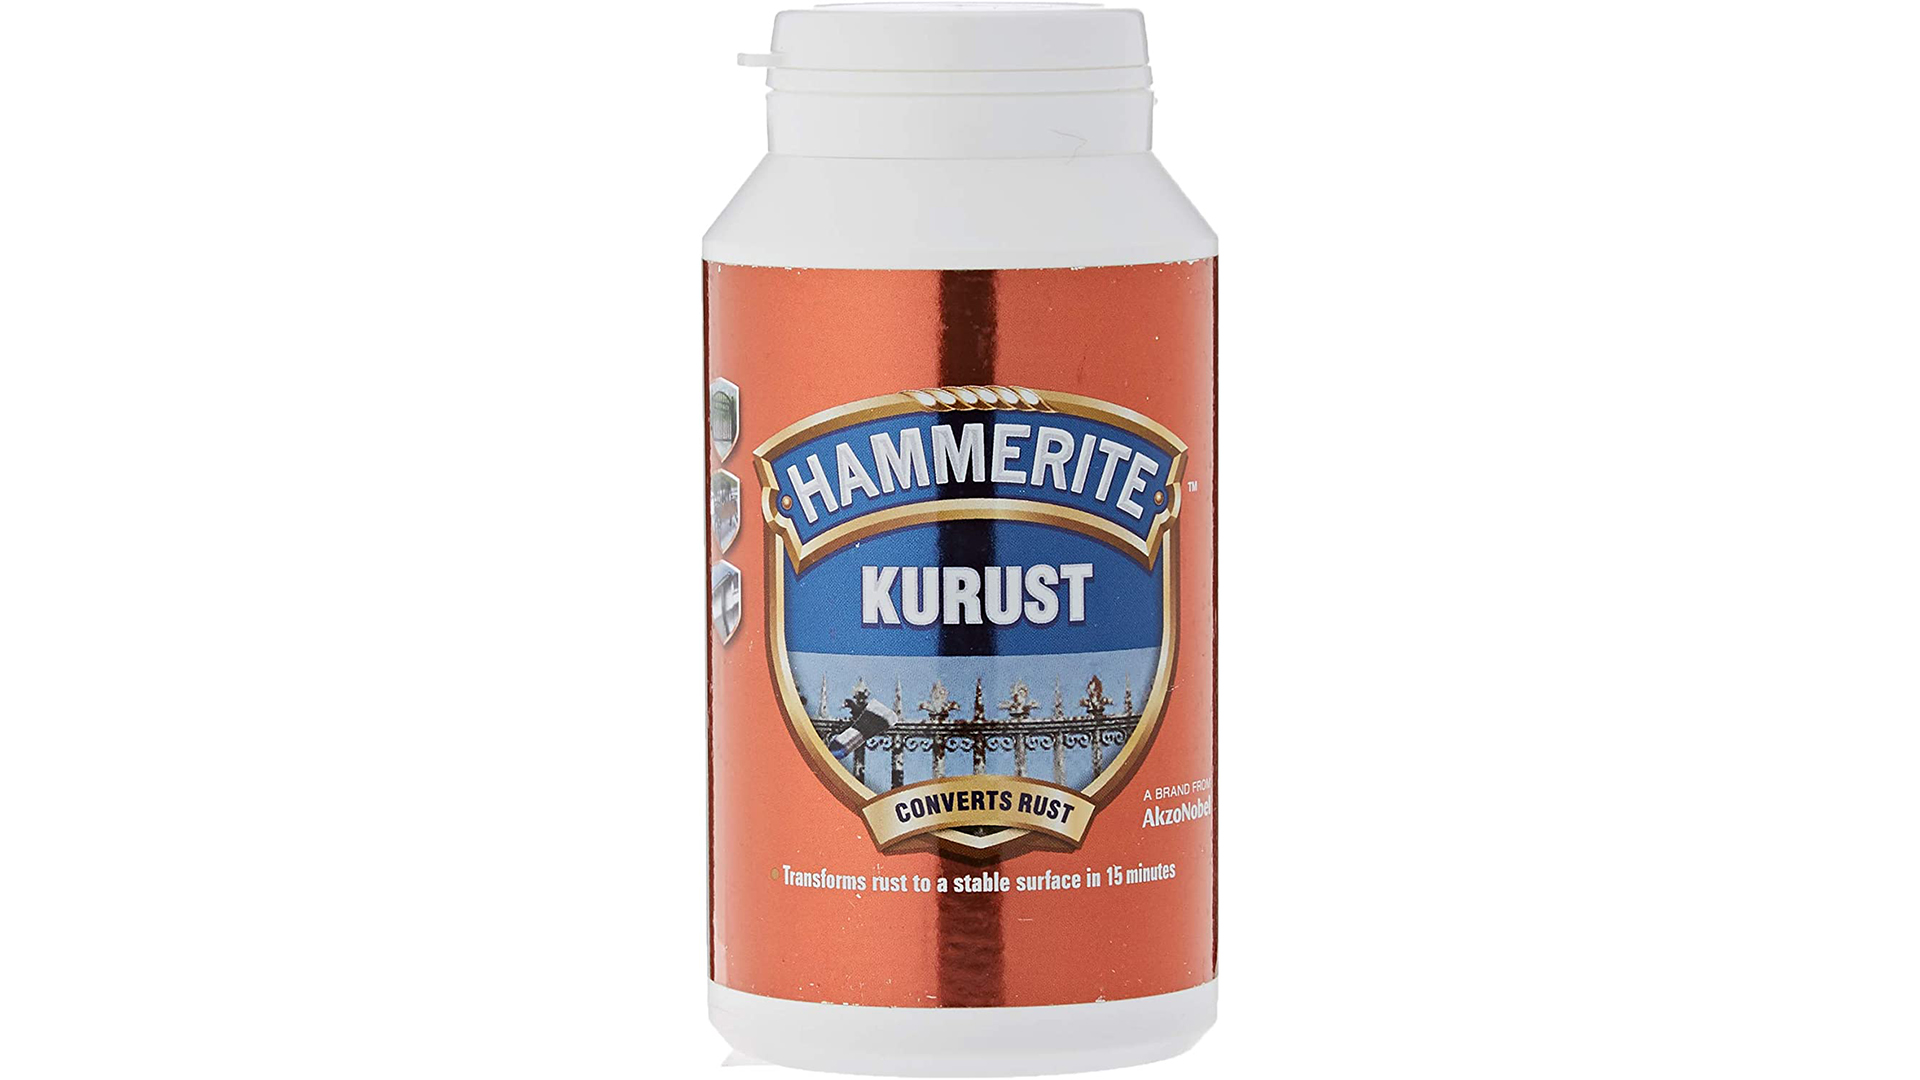 hammerite kurust review